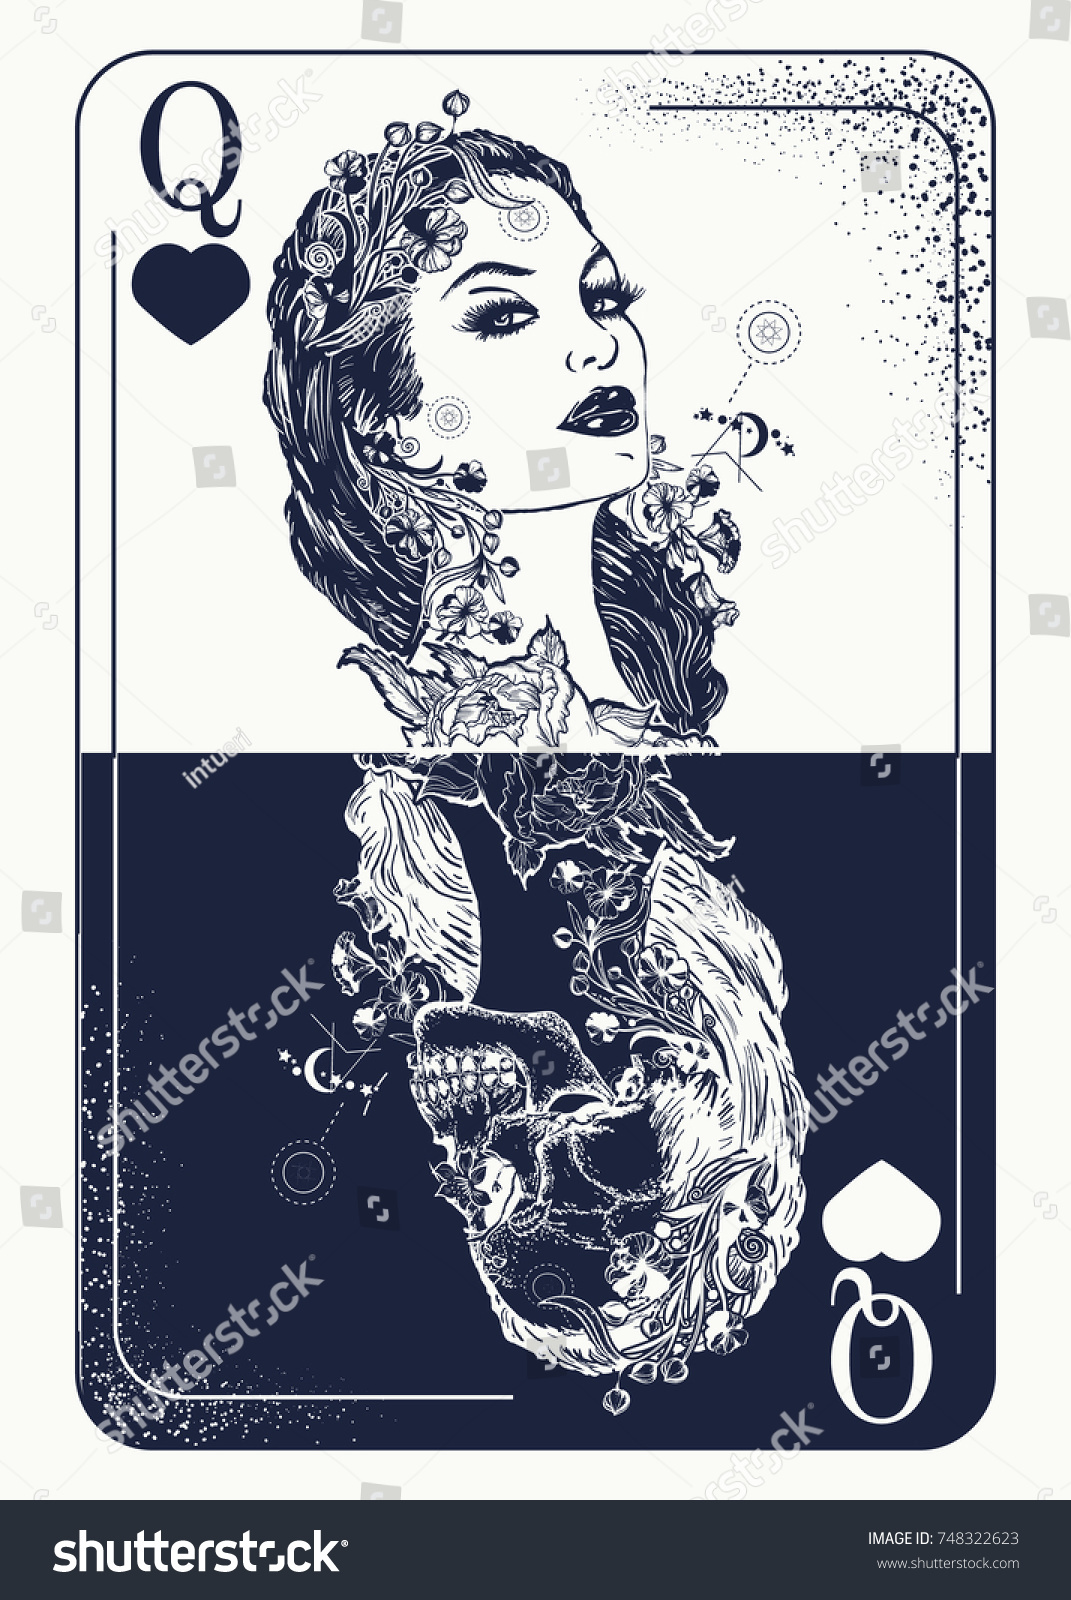 Queen Playing Card Tattoo Tshirt Design Stock Vector Royalty Free